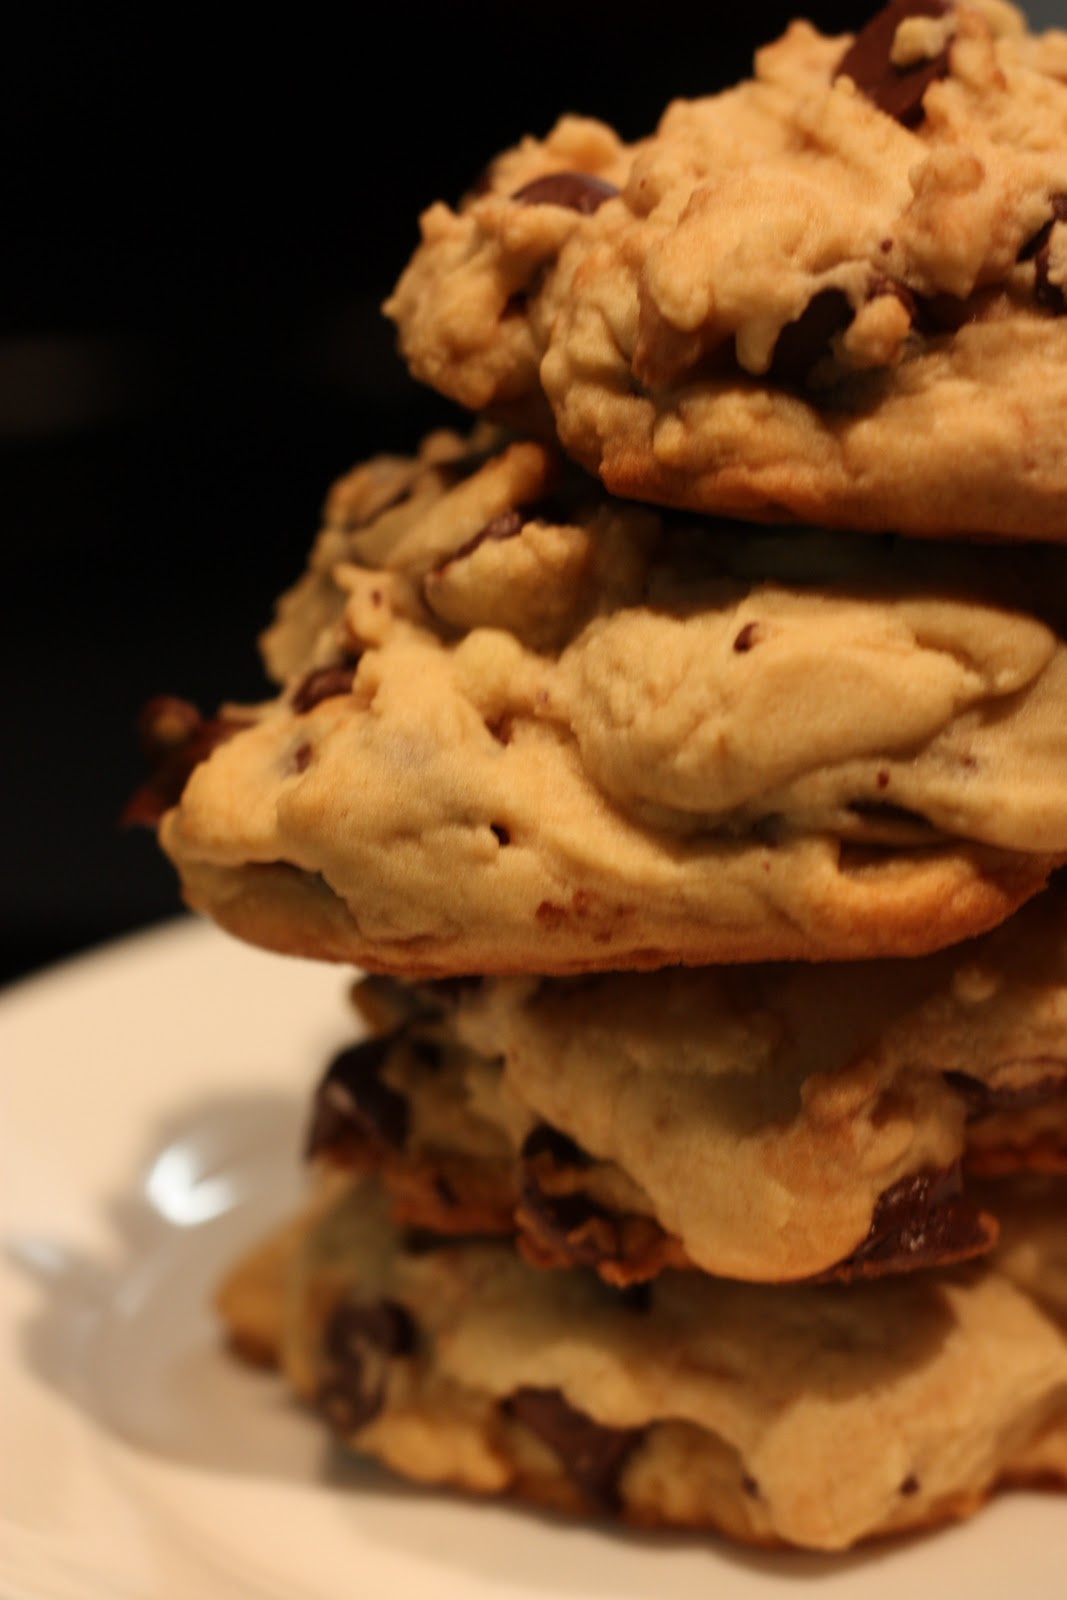 Award Winning Soft Chocolate Chip Cookies - Recipegreat.com